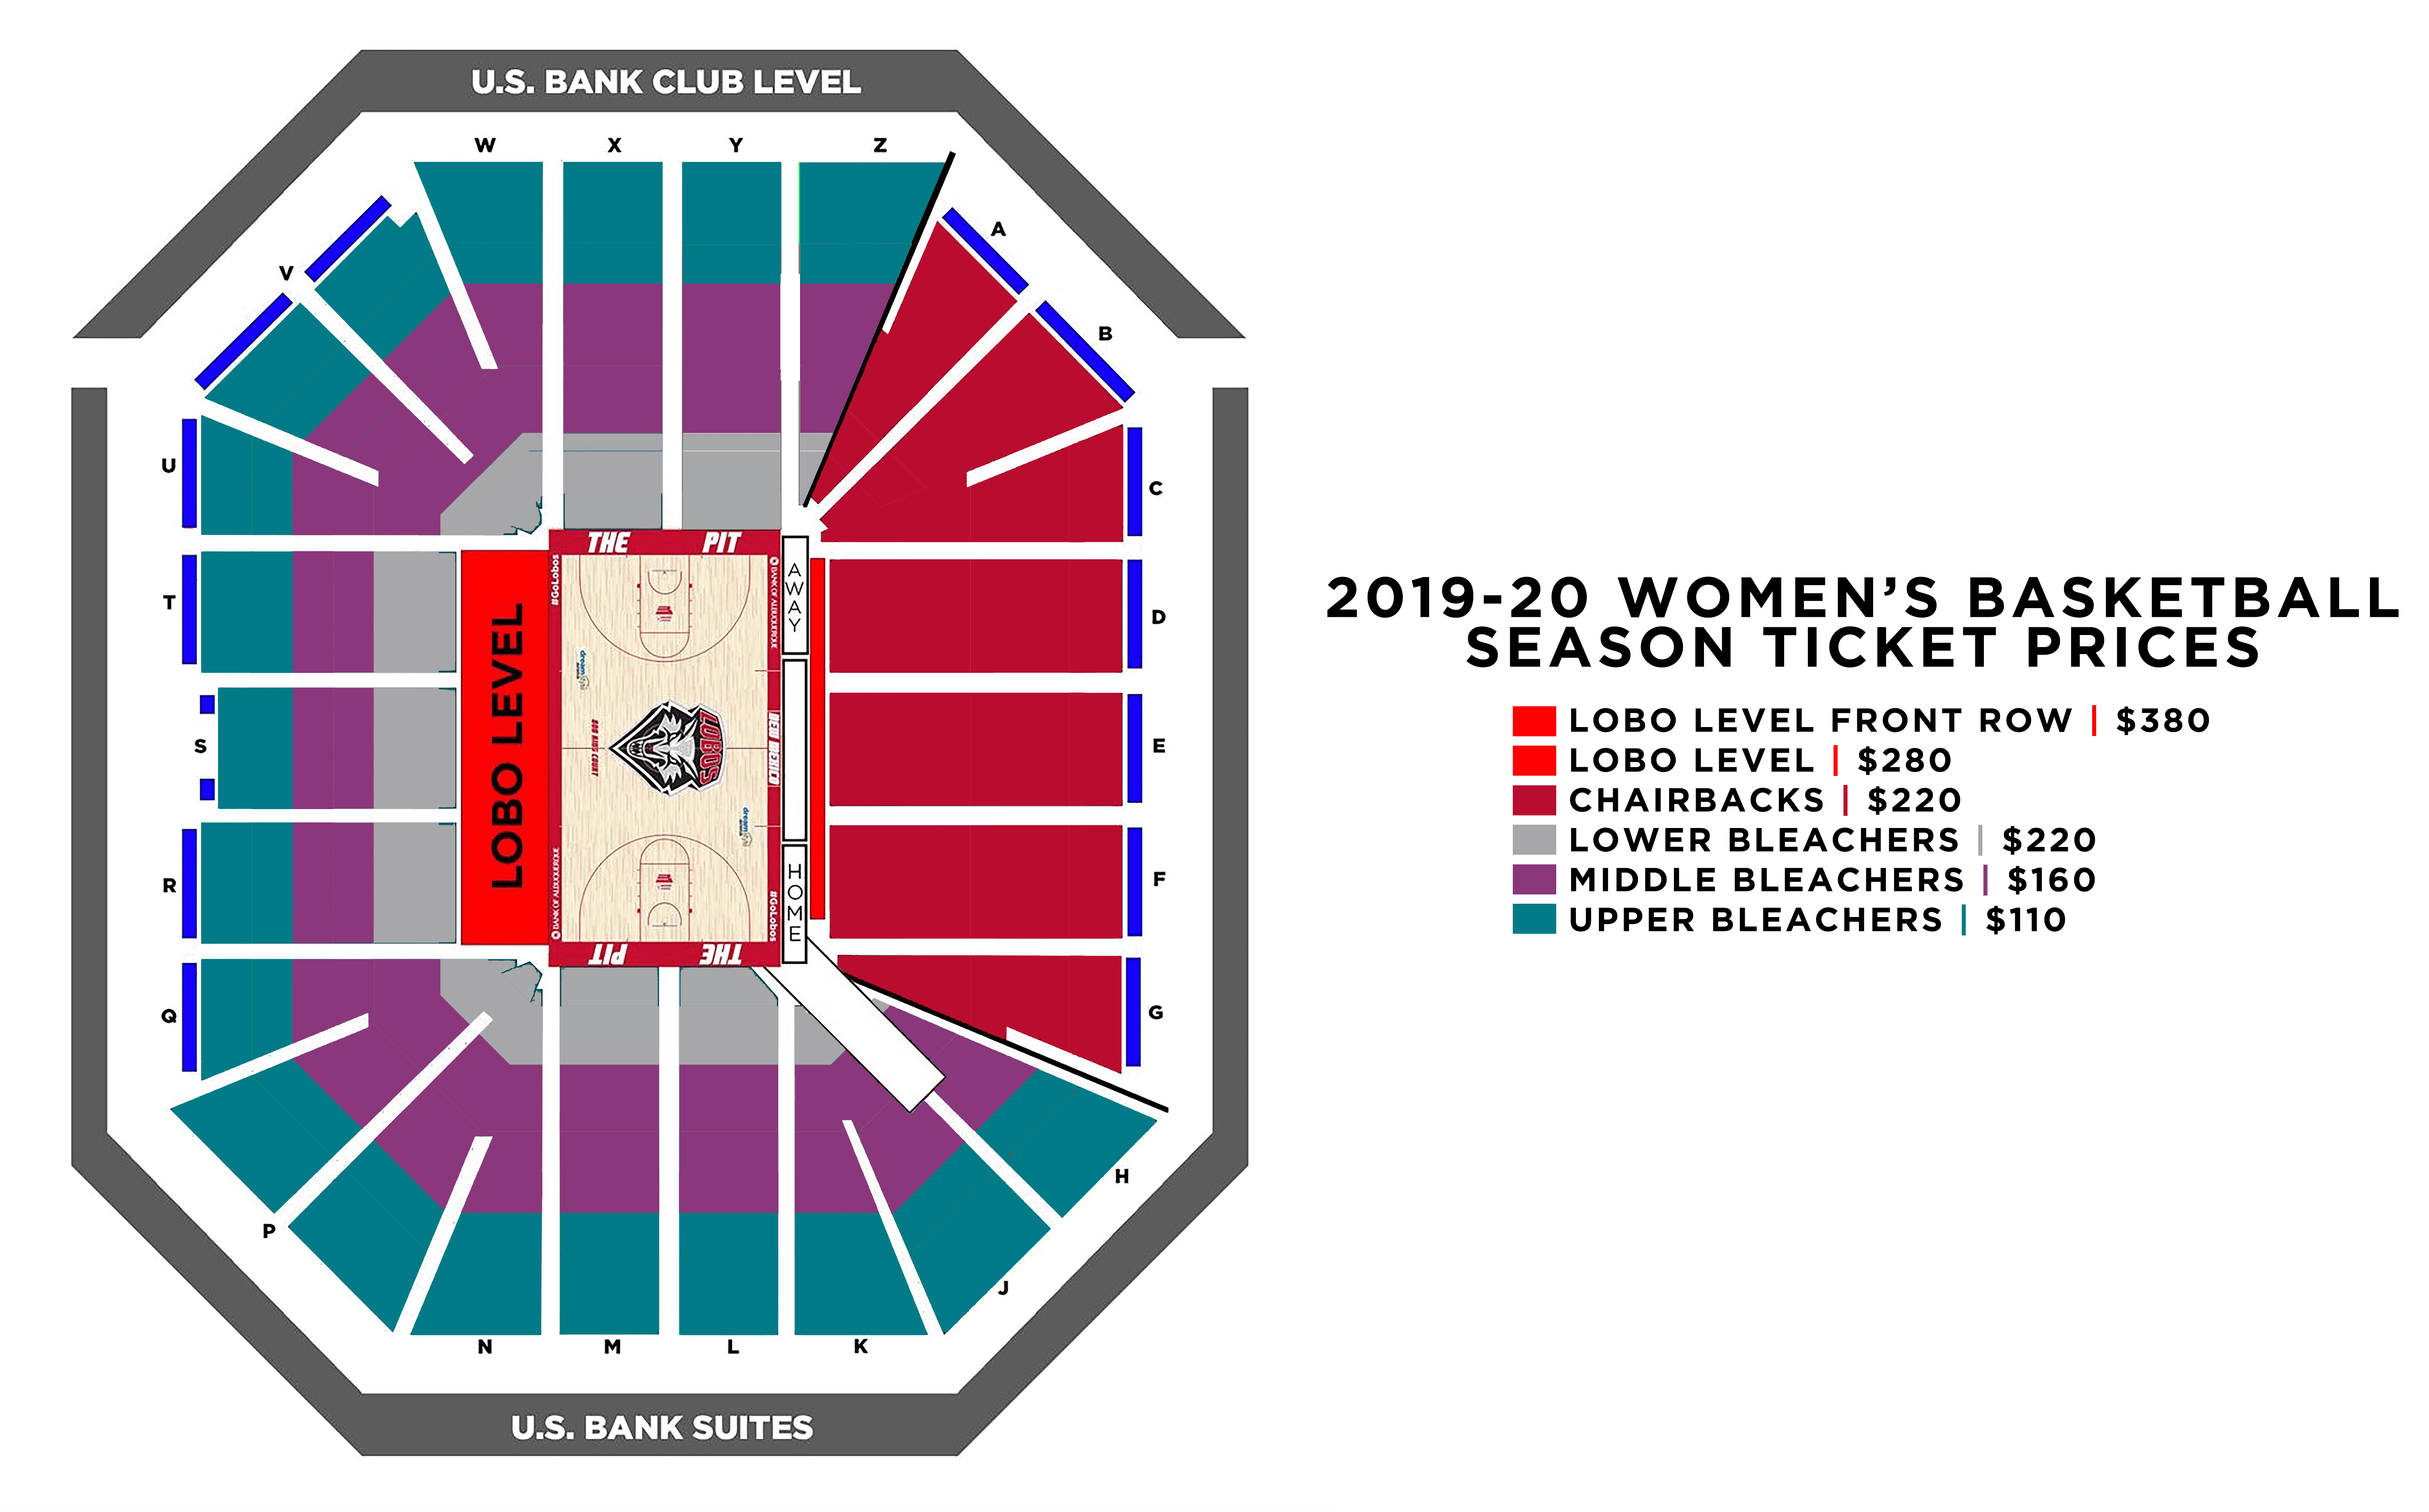 WBB Season Tickets 2019